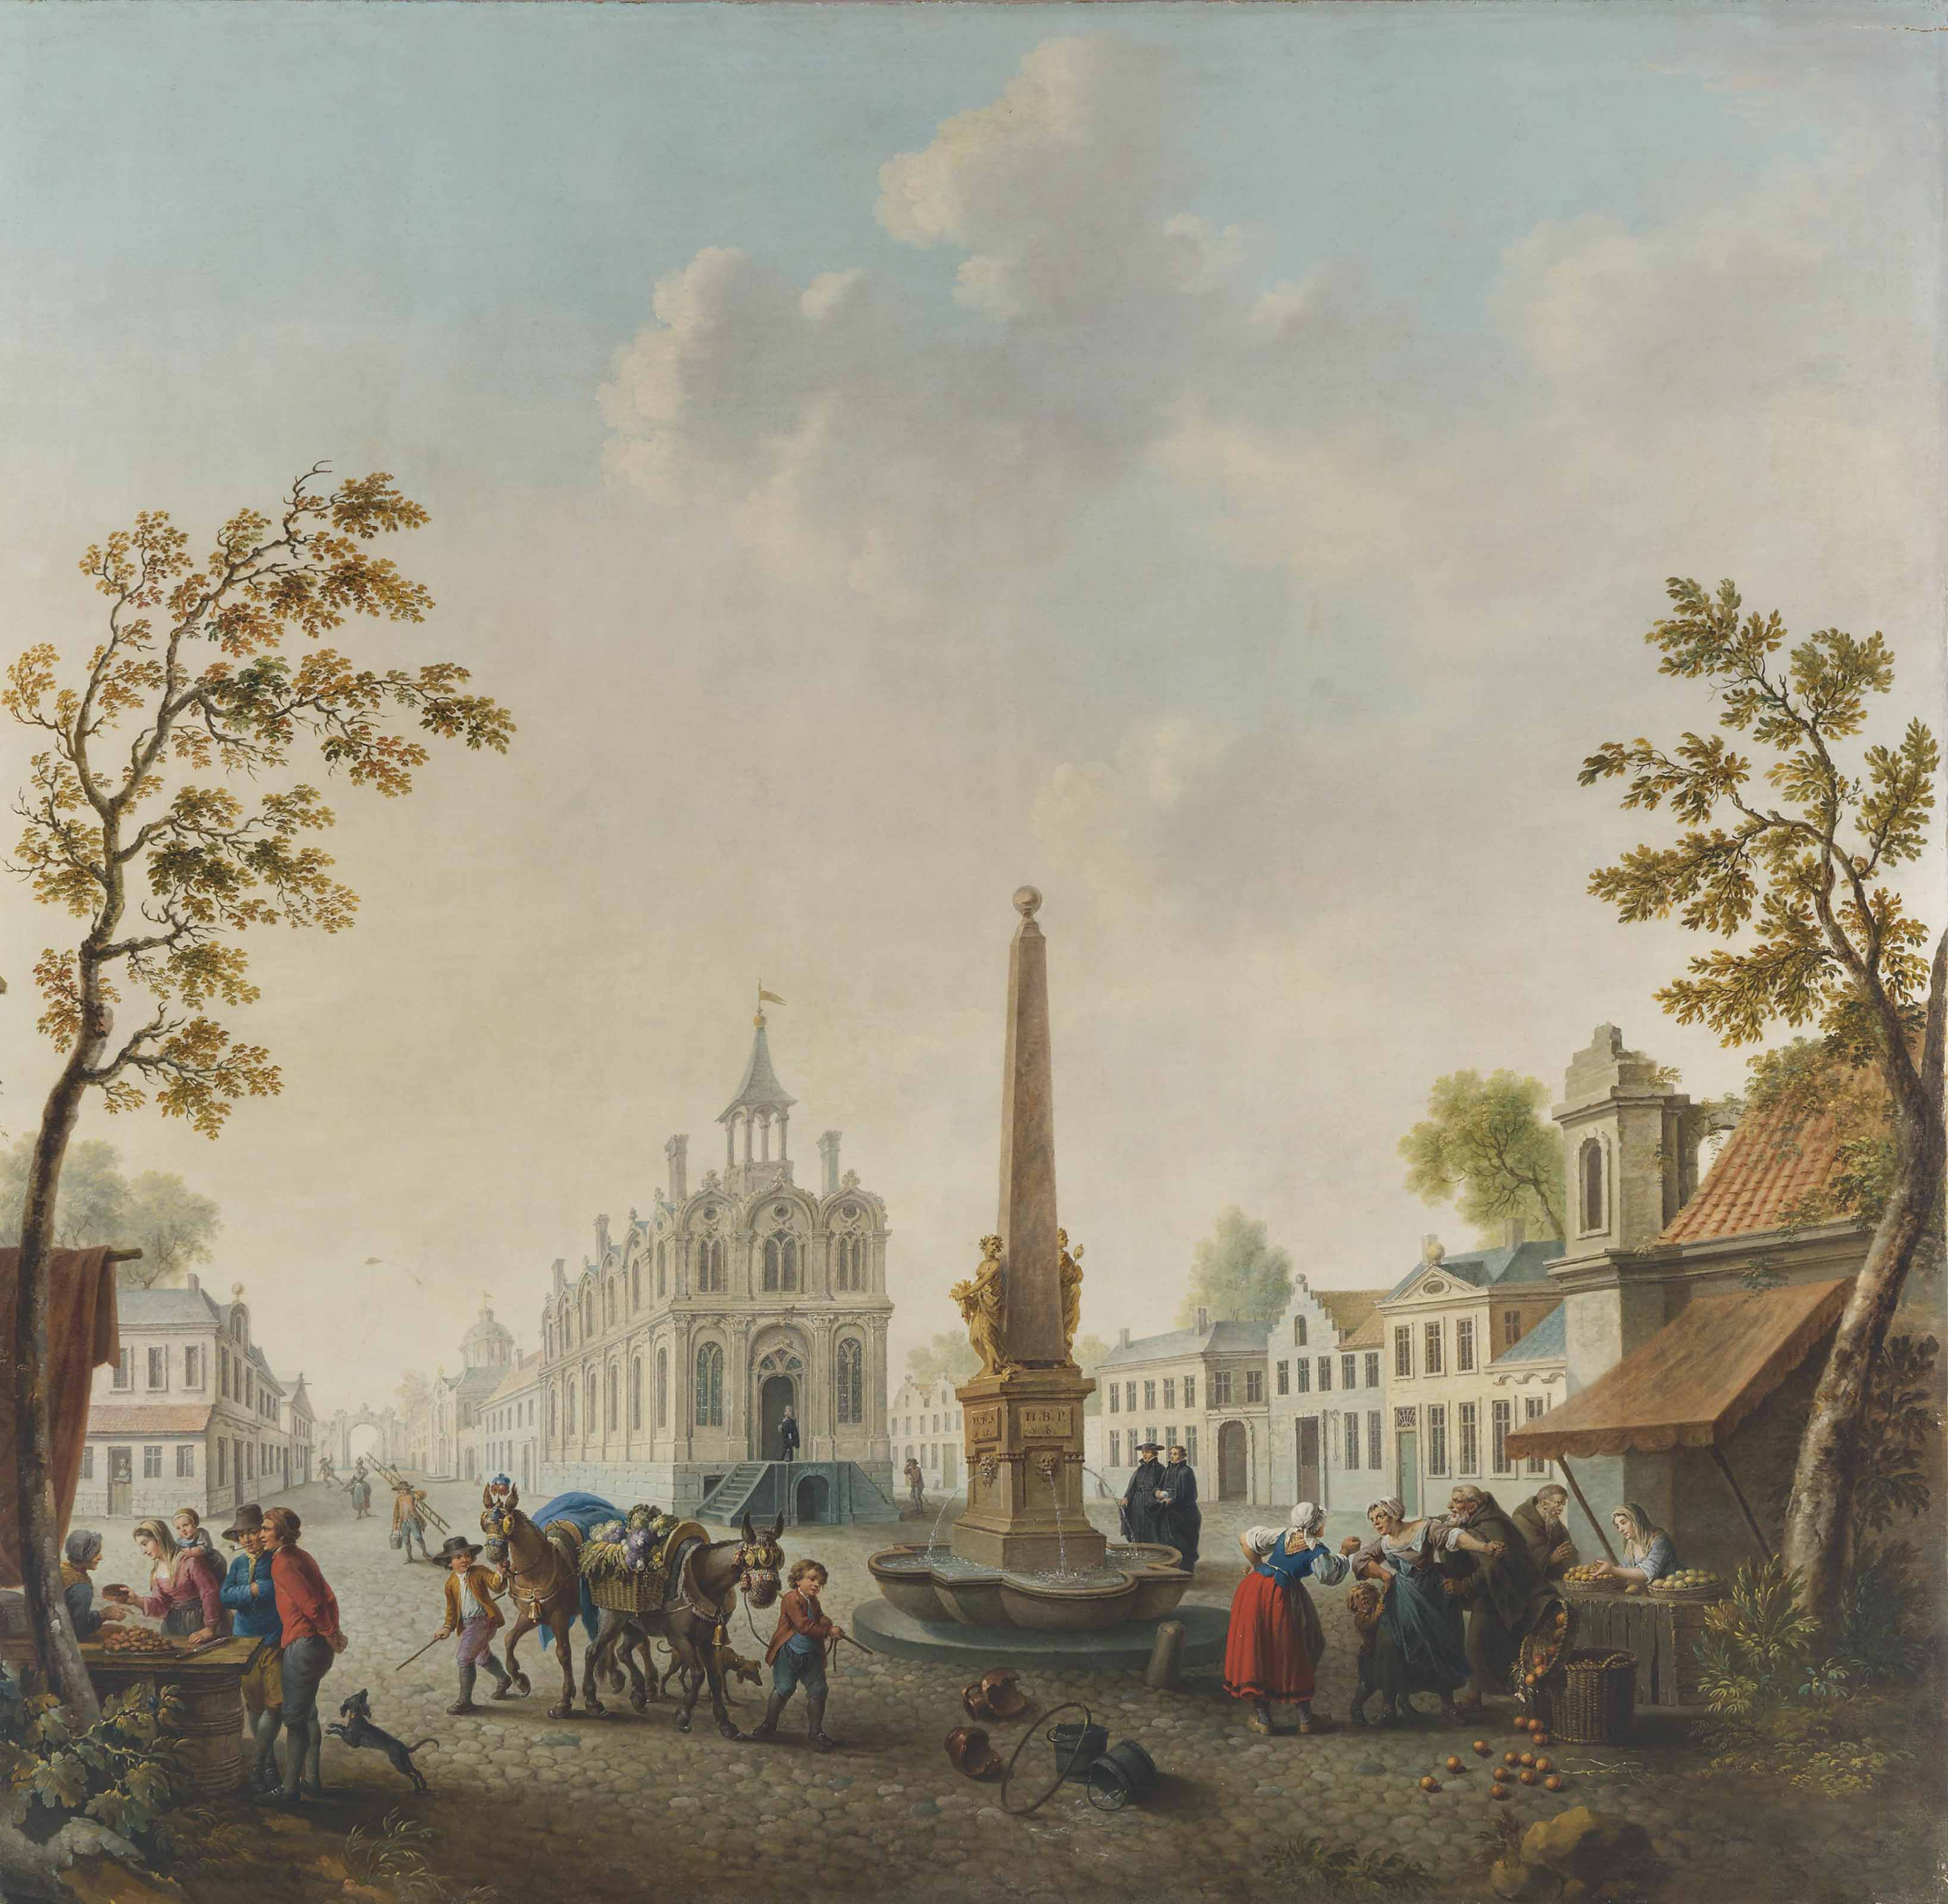 A continental town square with street vendors by a fountain and boys leading mules with flower baskets